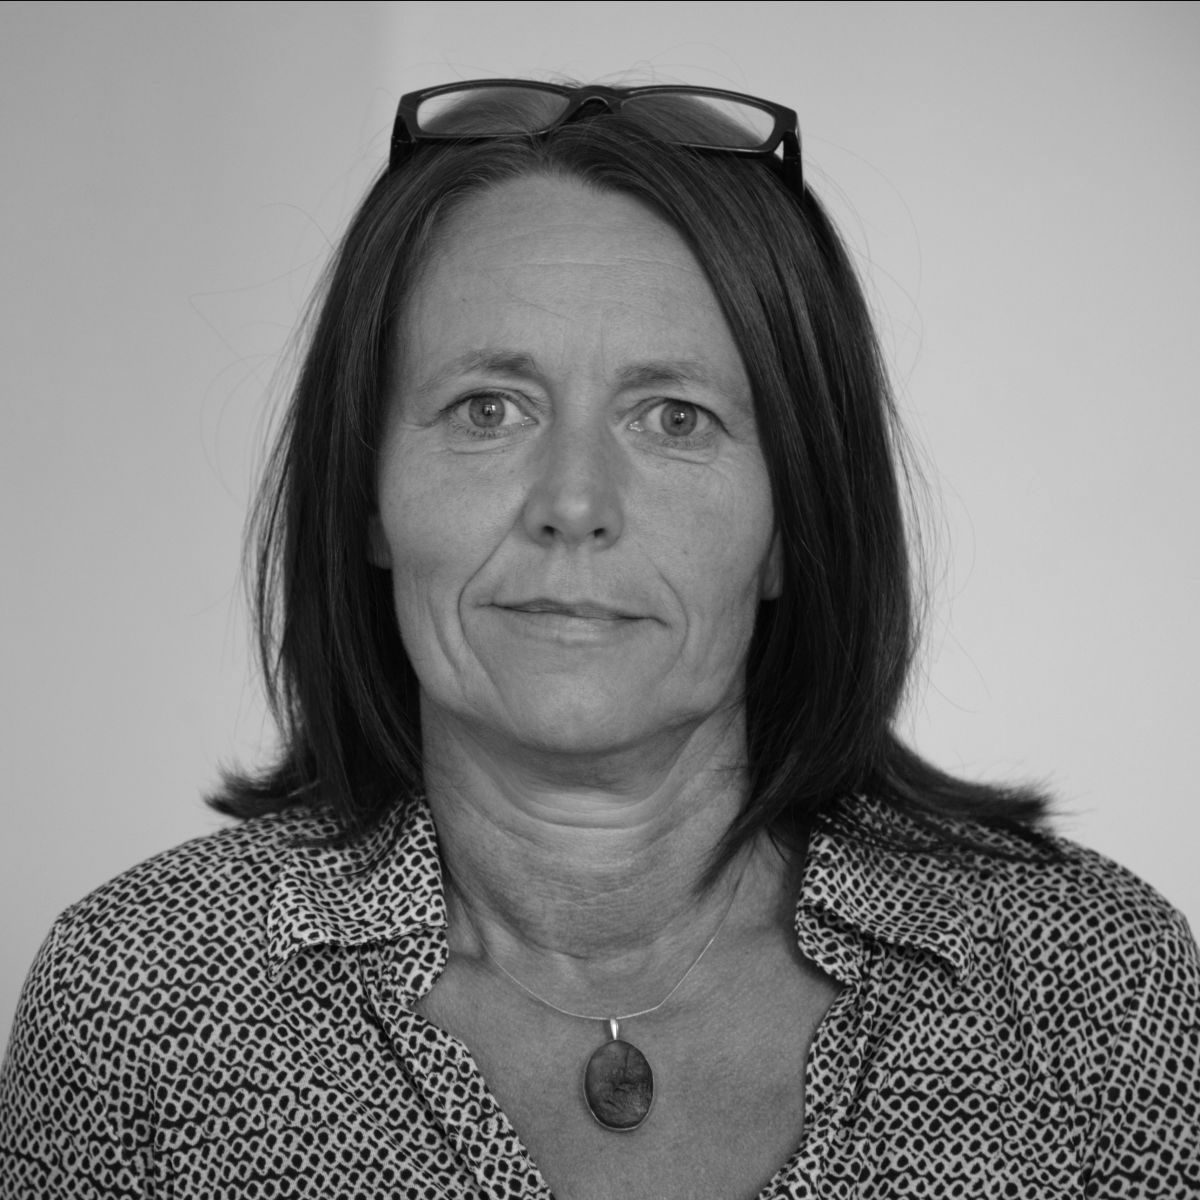 Project manager Uta Rüchel